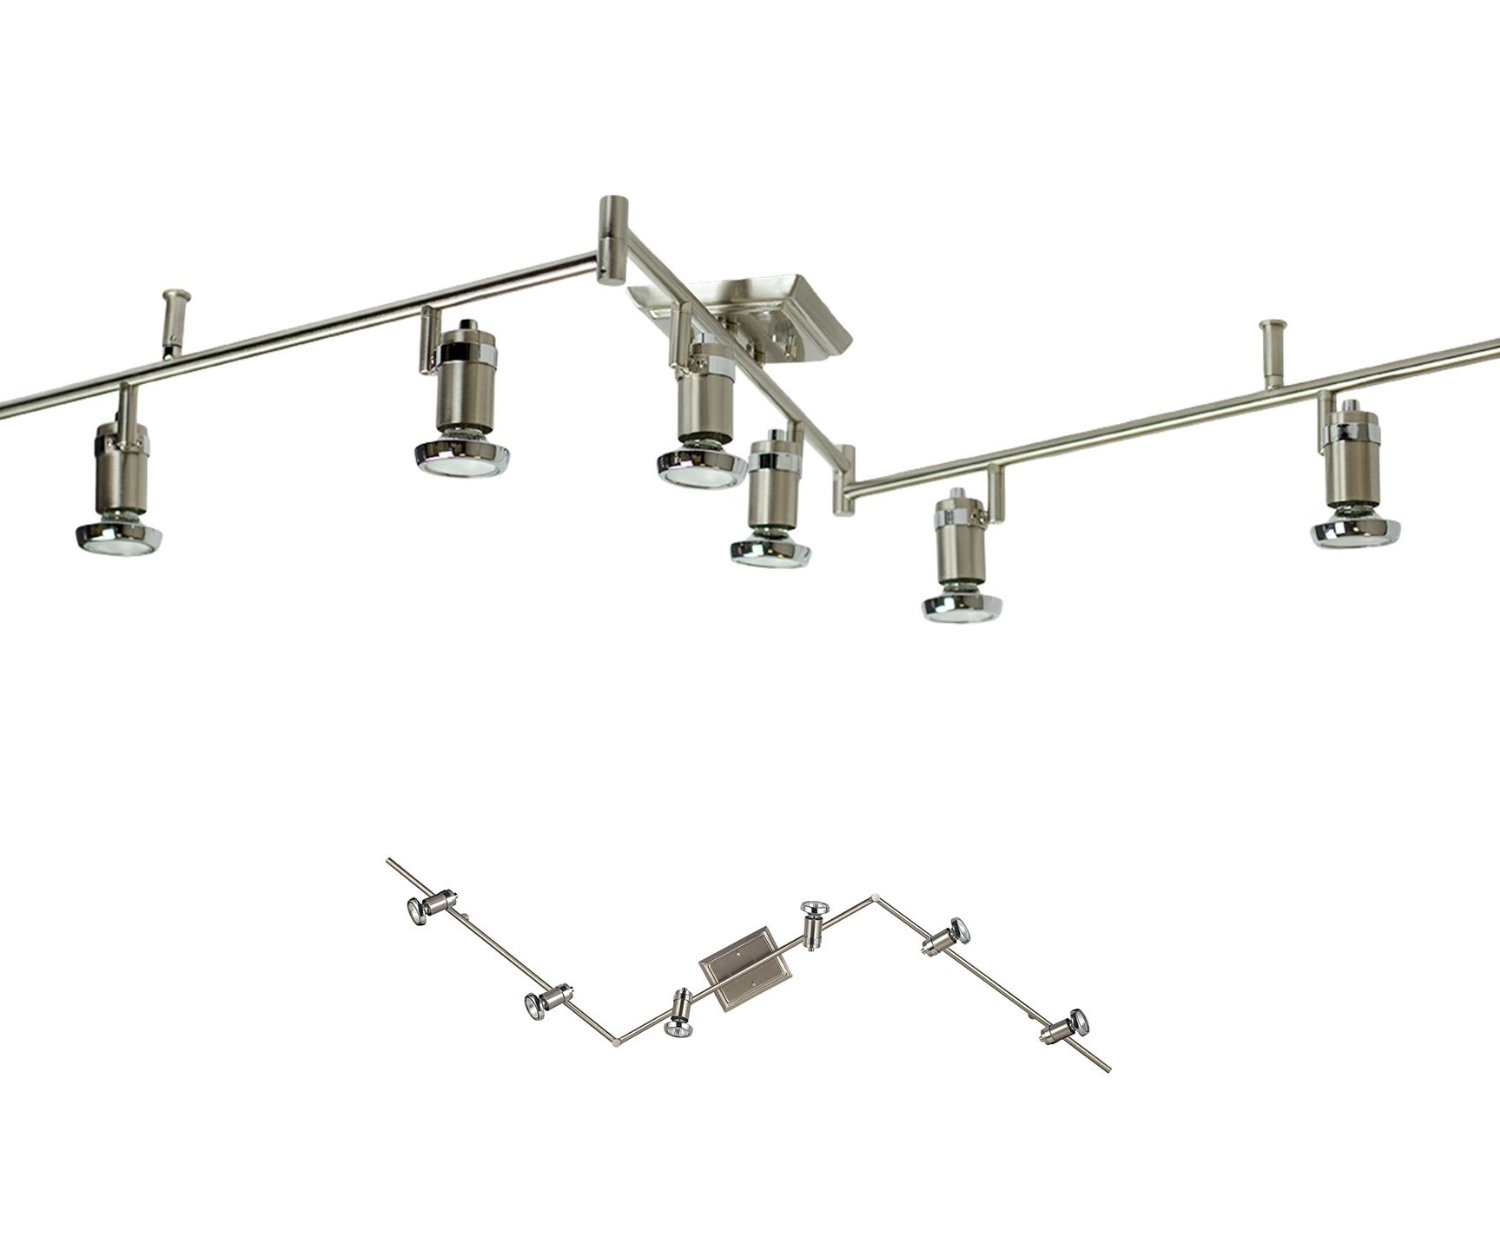 6 Light Track Lighting Ceiling Mount Spot Light Fixture